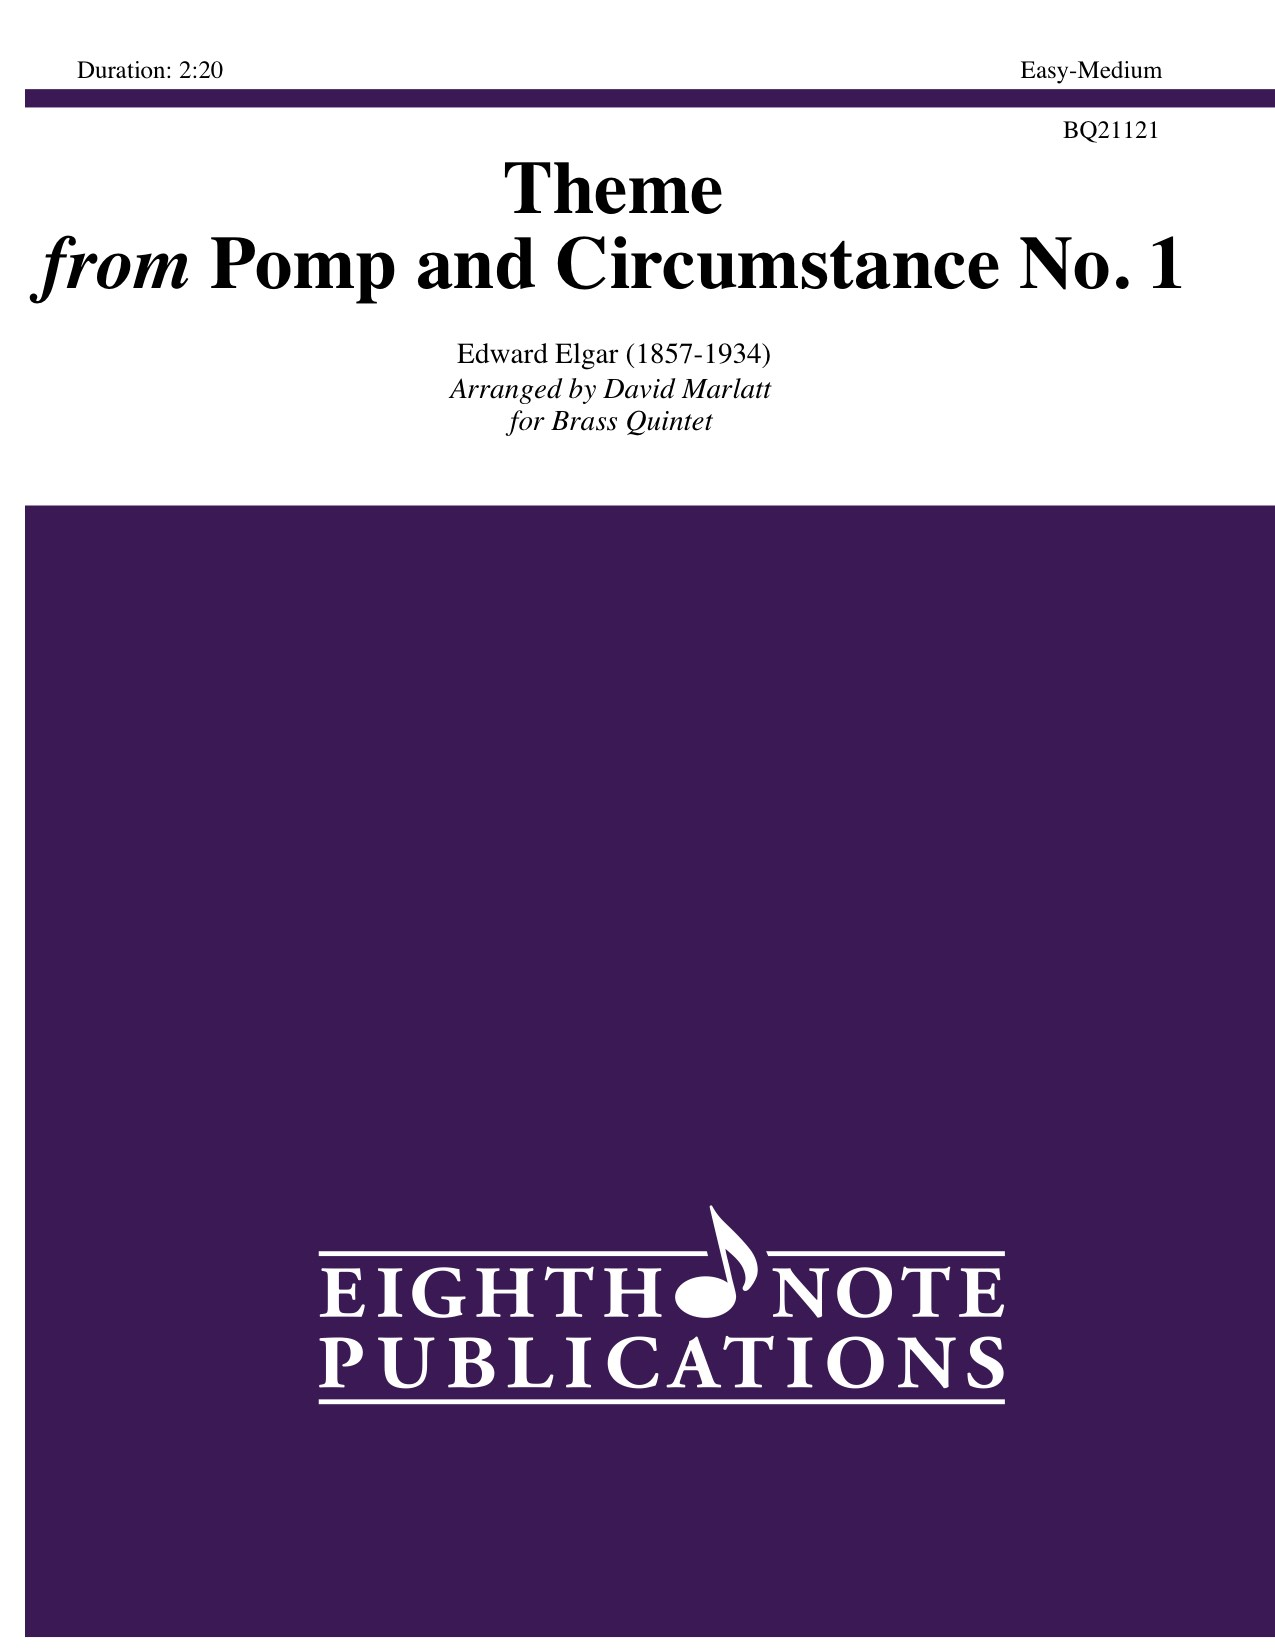 Pomp and circumstance no 1 theme for brass quintet for Pomp and circumstance